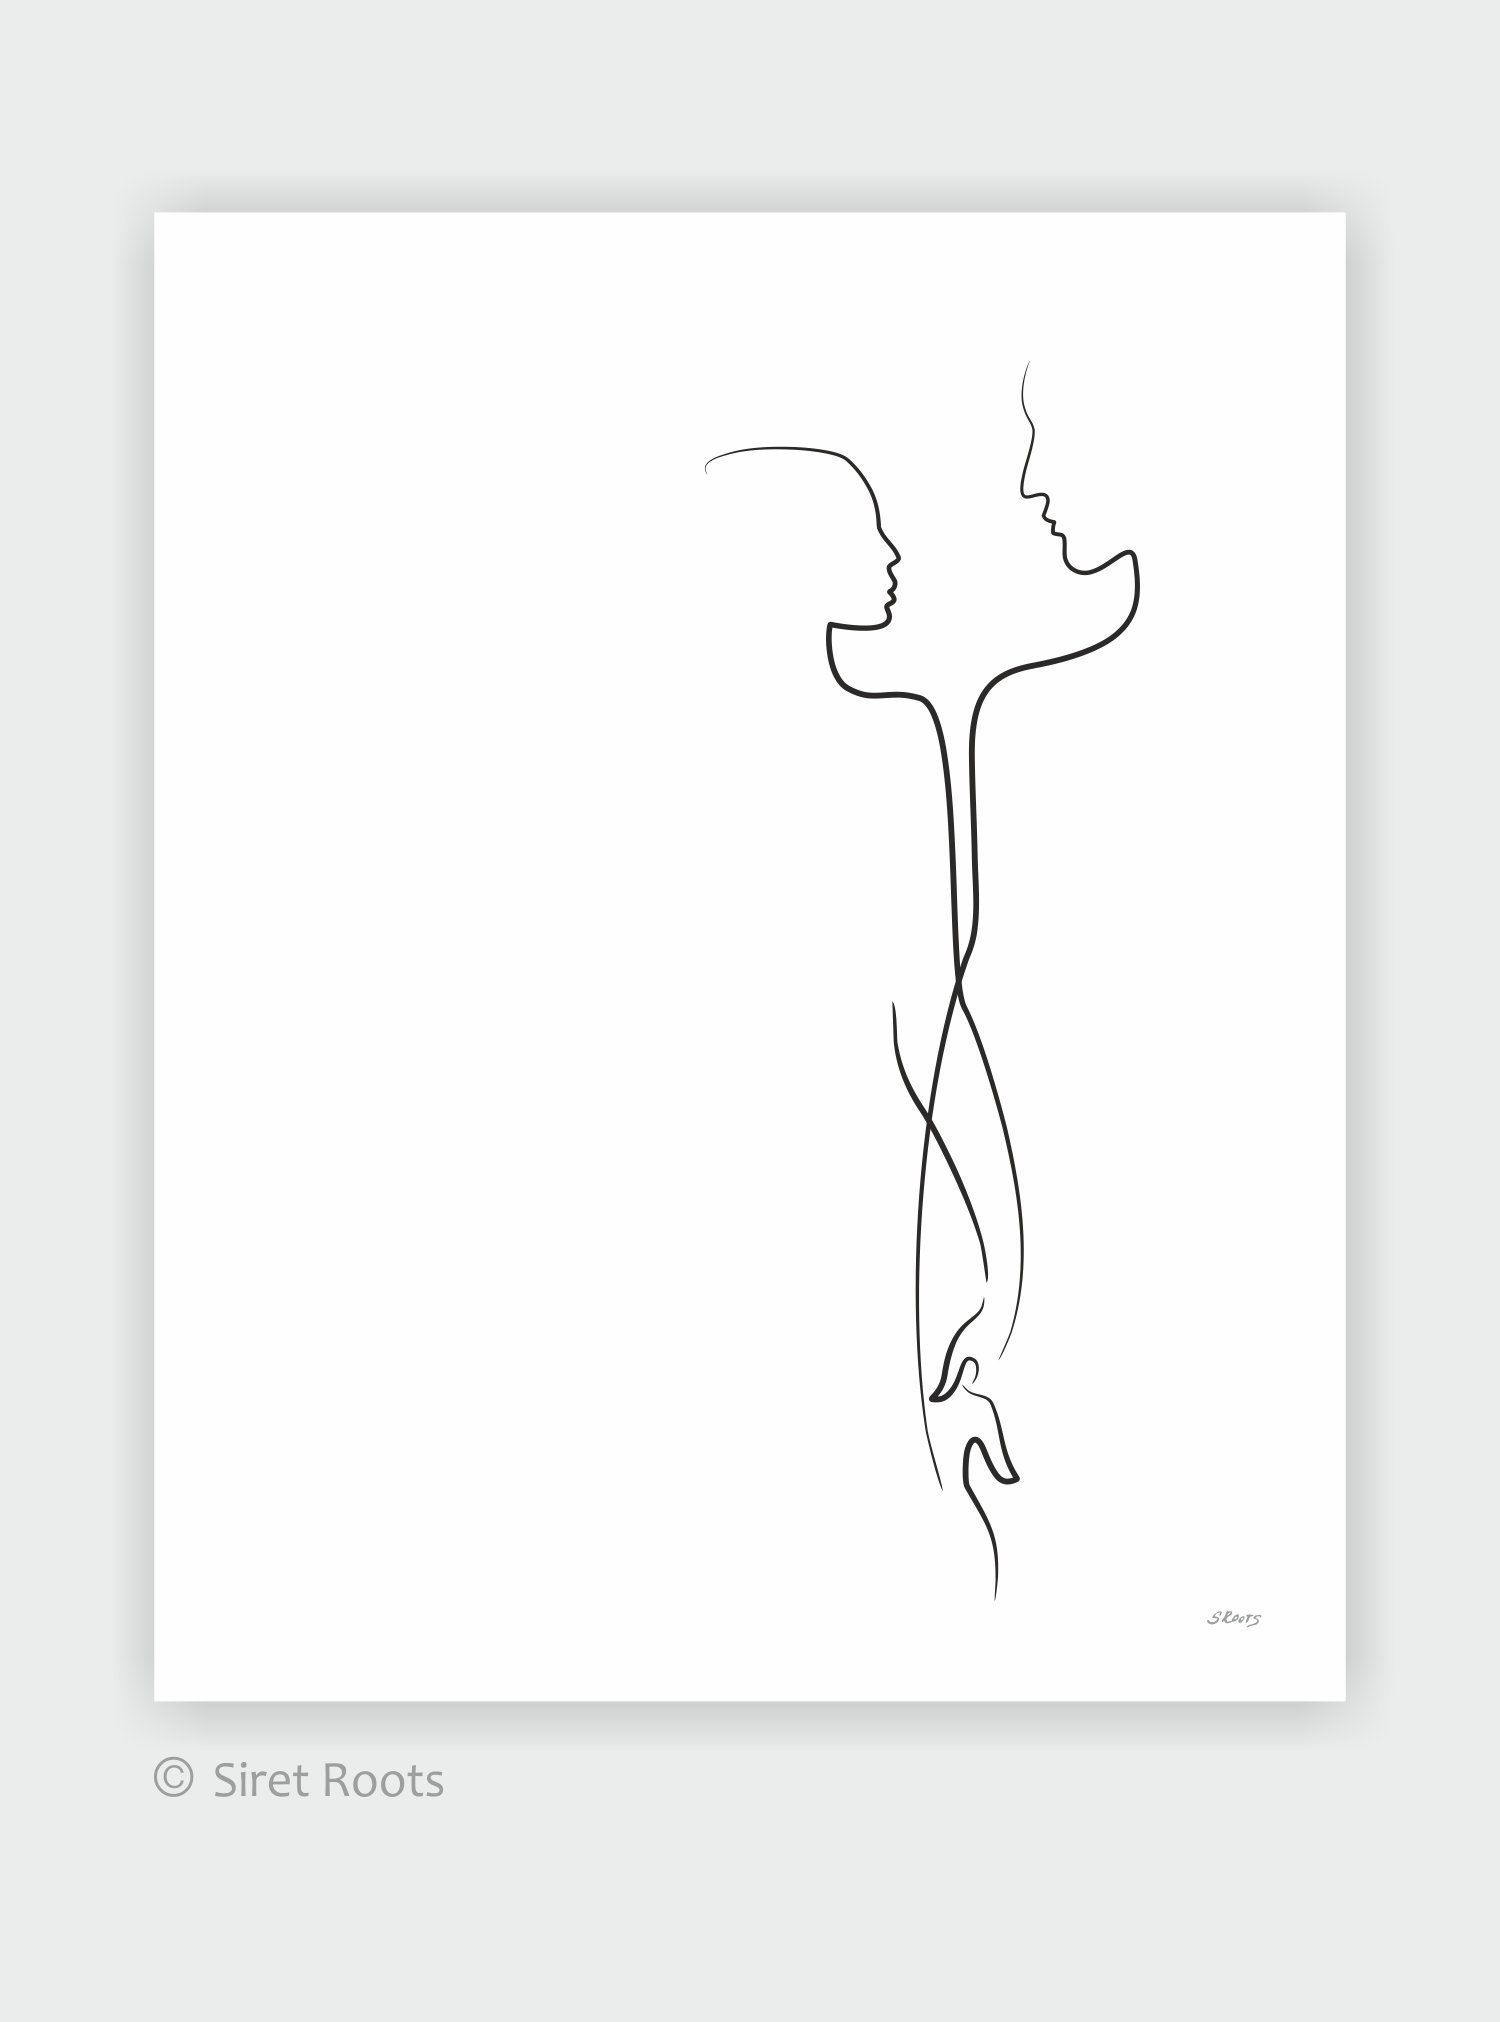 Romantic couple art print. Minimalist line drawing of a man and woman holding hands. Love illustration.